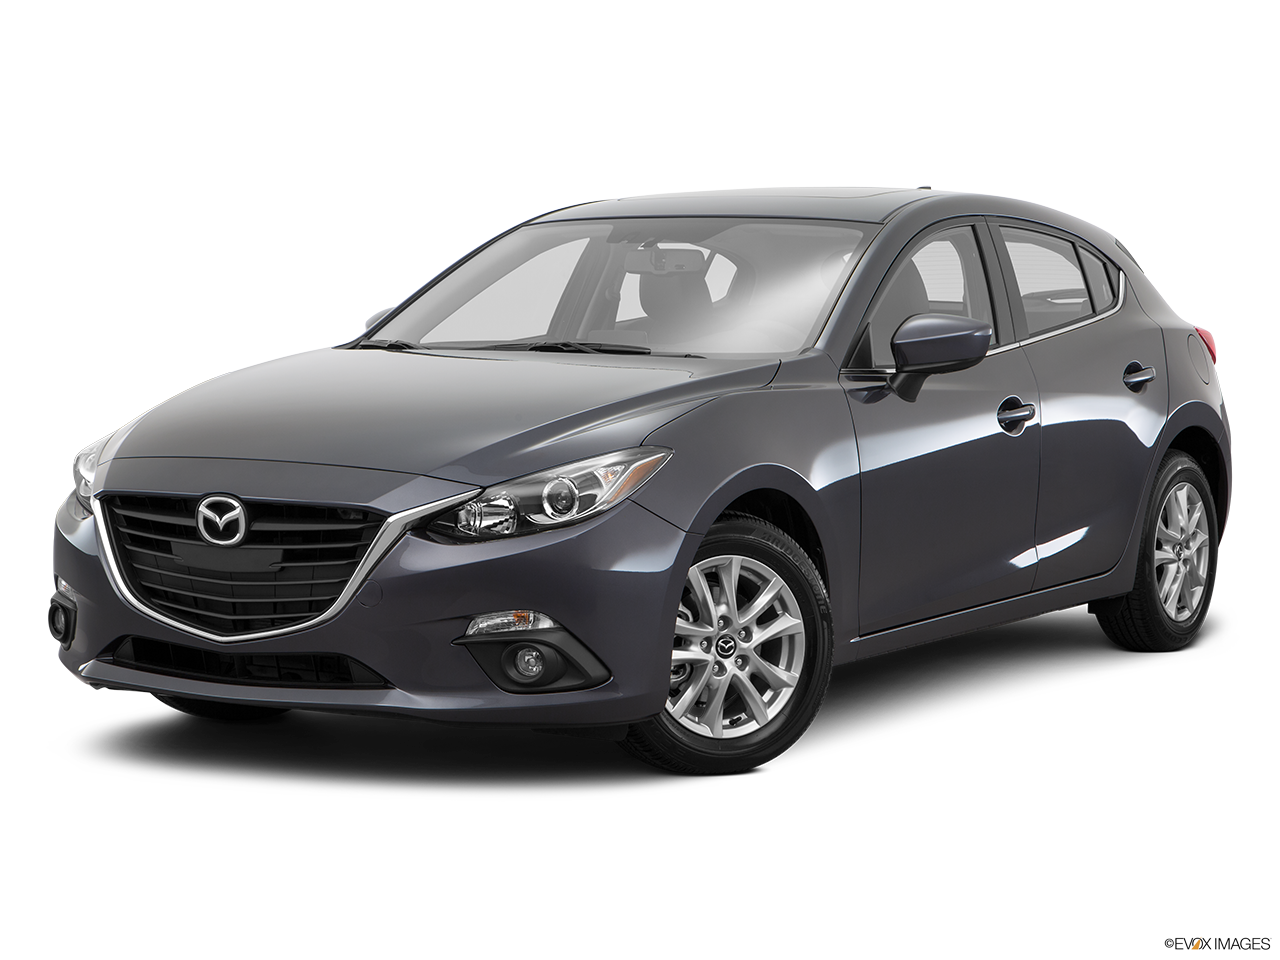 2016 mazda3 5 door dealer in syracuse romano mazda. Black Bedroom Furniture Sets. Home Design Ideas